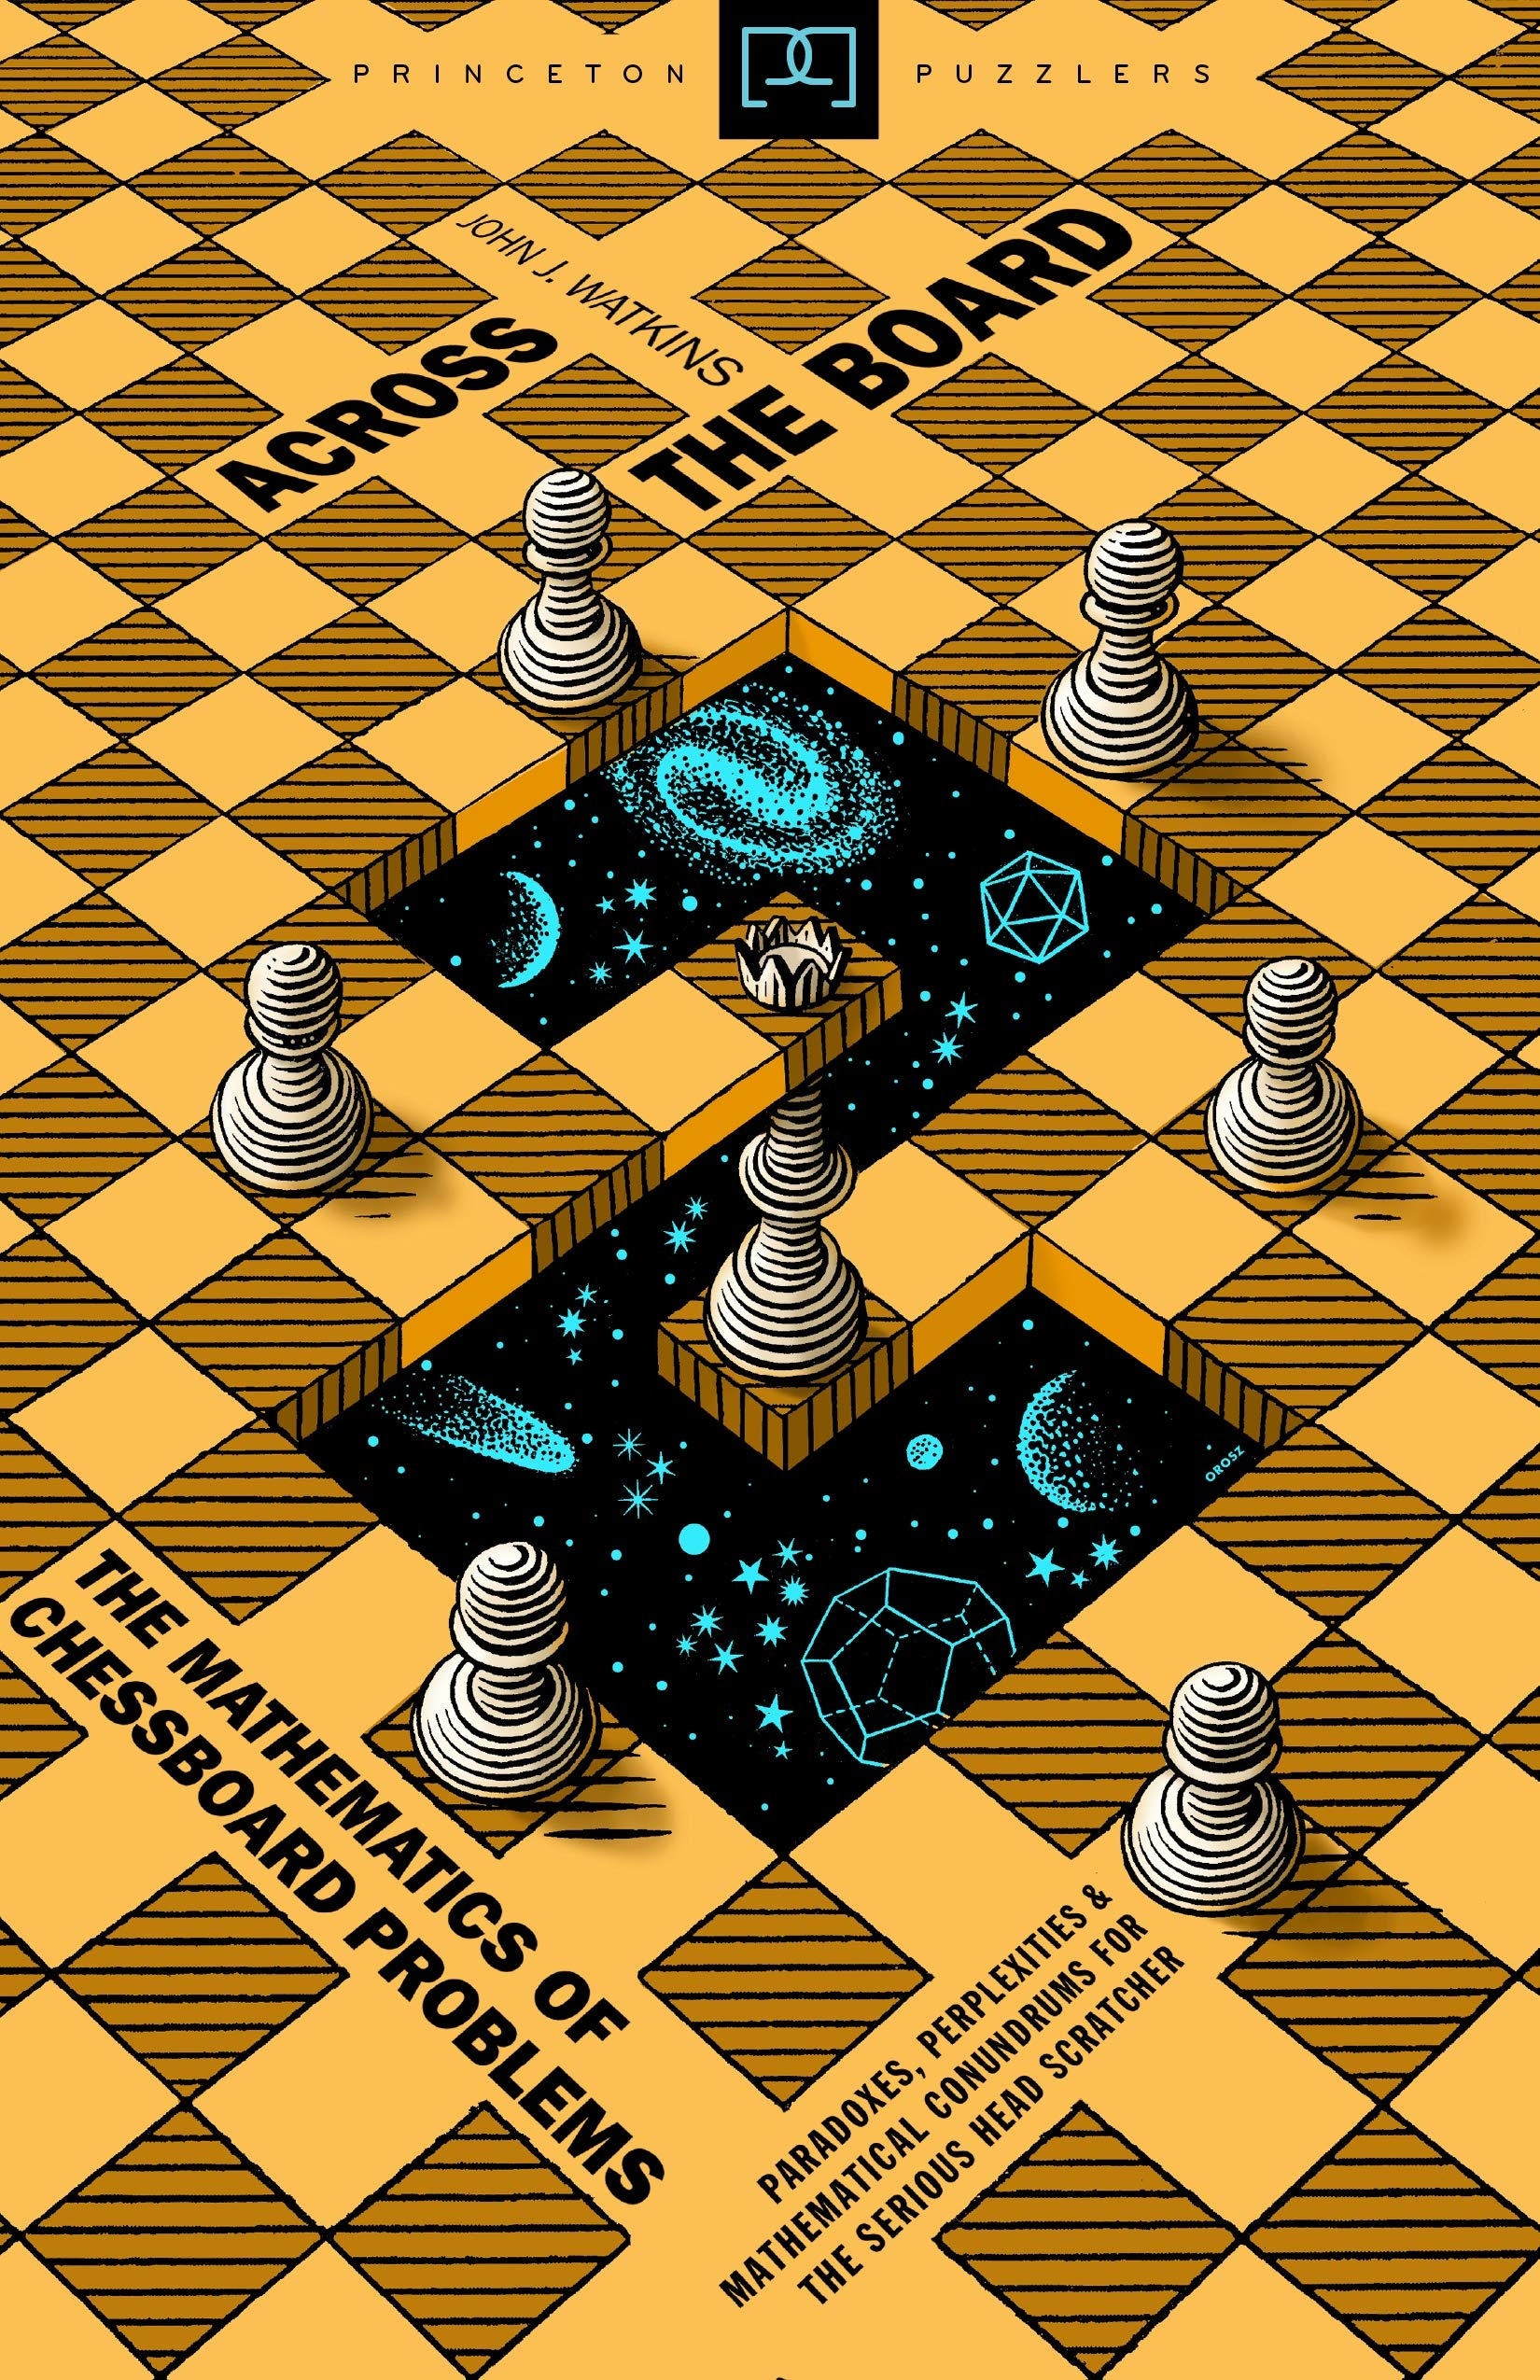 Across the Board: The Mathematics of Chessboard Problems ...